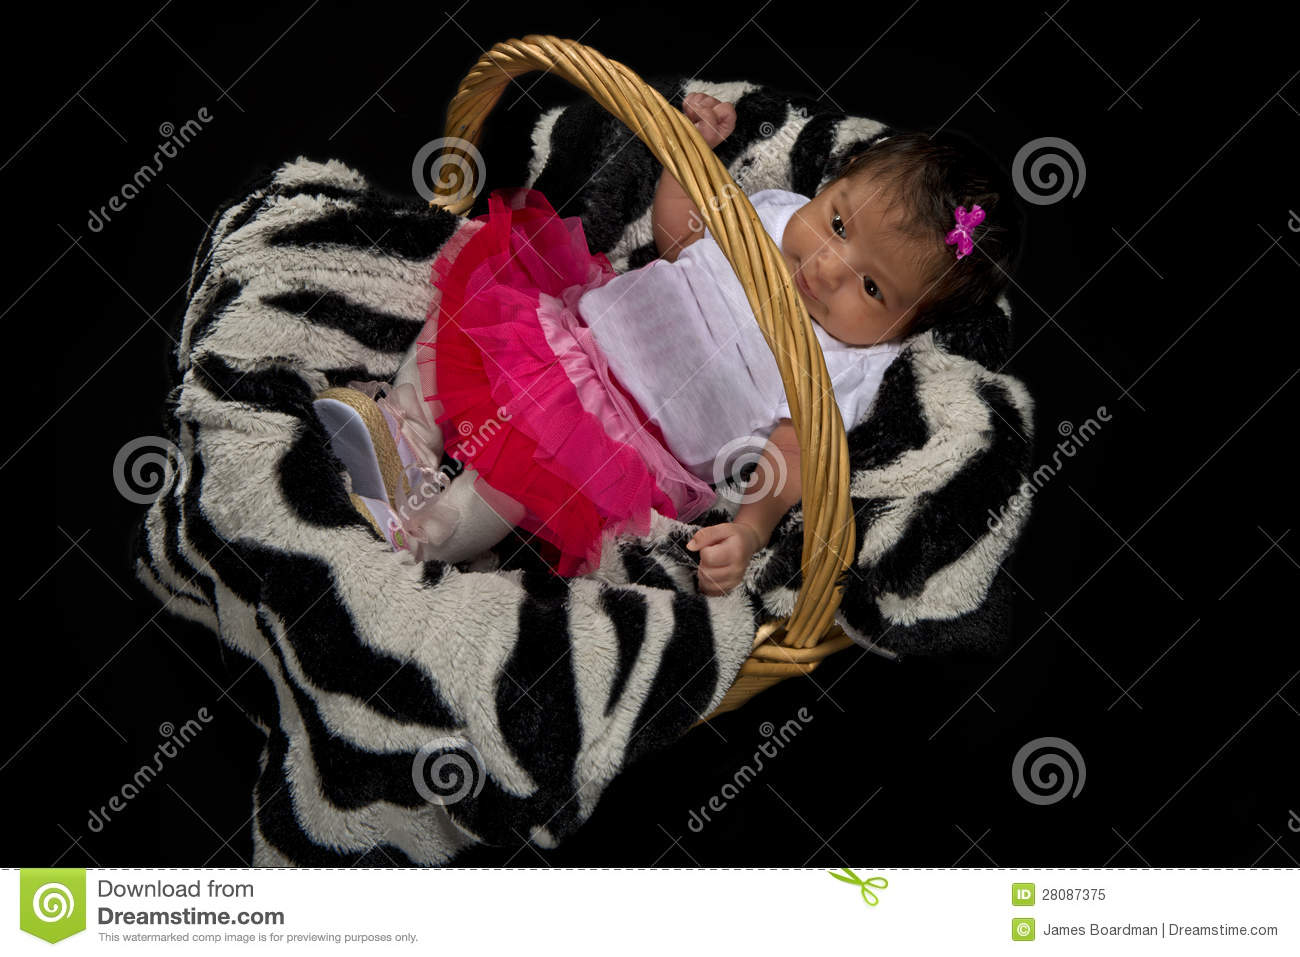 newborn spanish girl personals Favorite this post apr 29 boy's outfit with hat- white-newborn $10 (towson/perry hall) favorite this post apr 29 girl's.